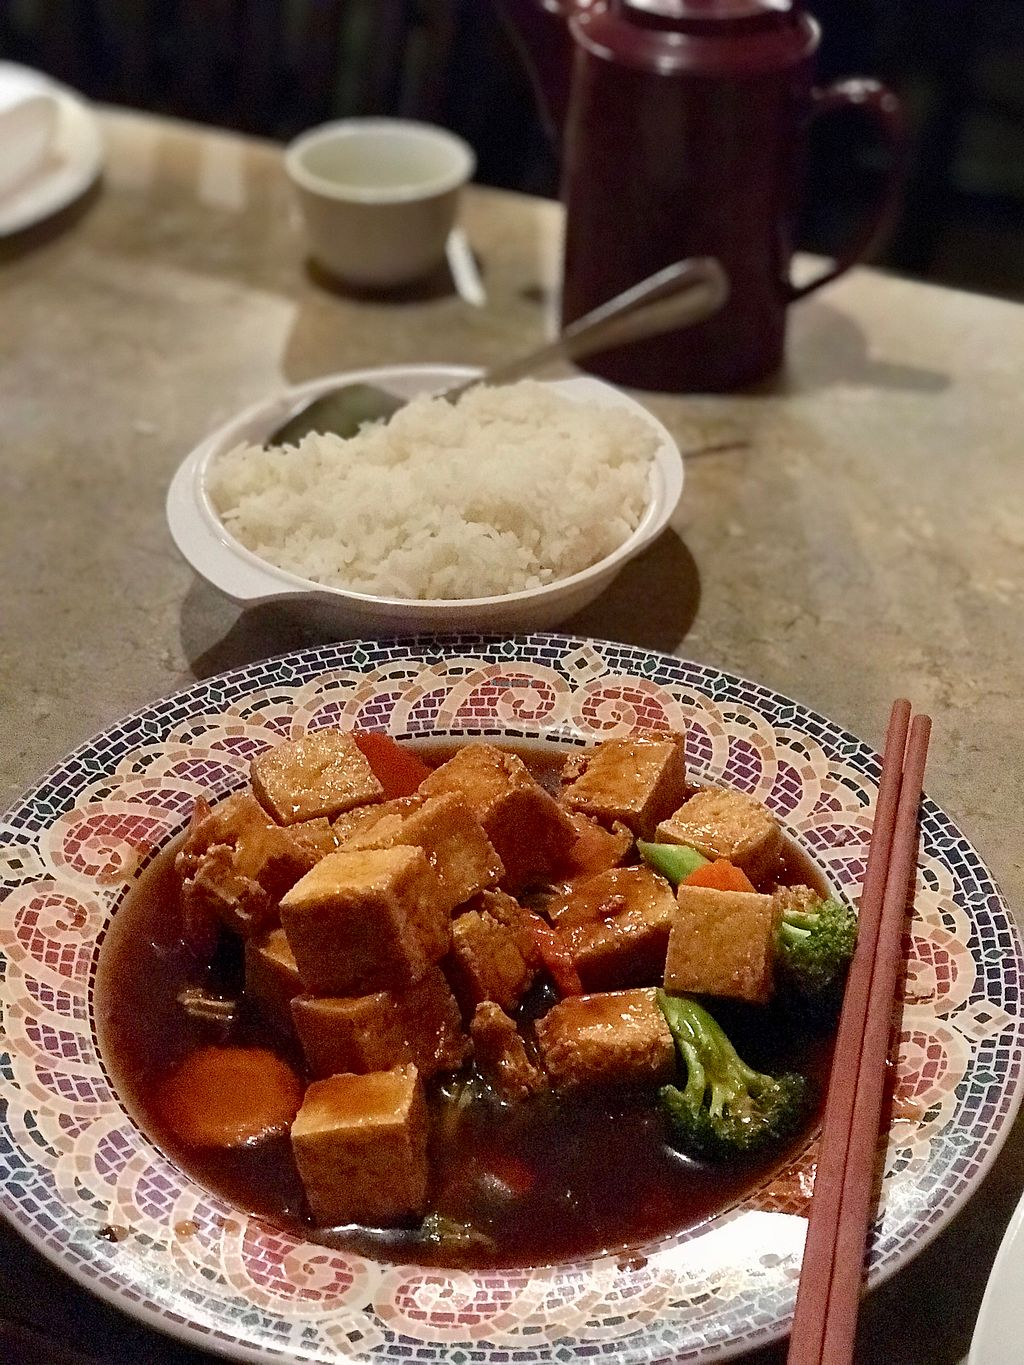 """Photo of Lai Thai Kitchen  by <a href=""""/members/profile/PlantPoweredRN"""">PlantPoweredRN</a> <br/>Vegan-General Tso Tofu  <br/> January 3, 2018  - <a href='/contact/abuse/image/33164/342606'>Report</a>"""